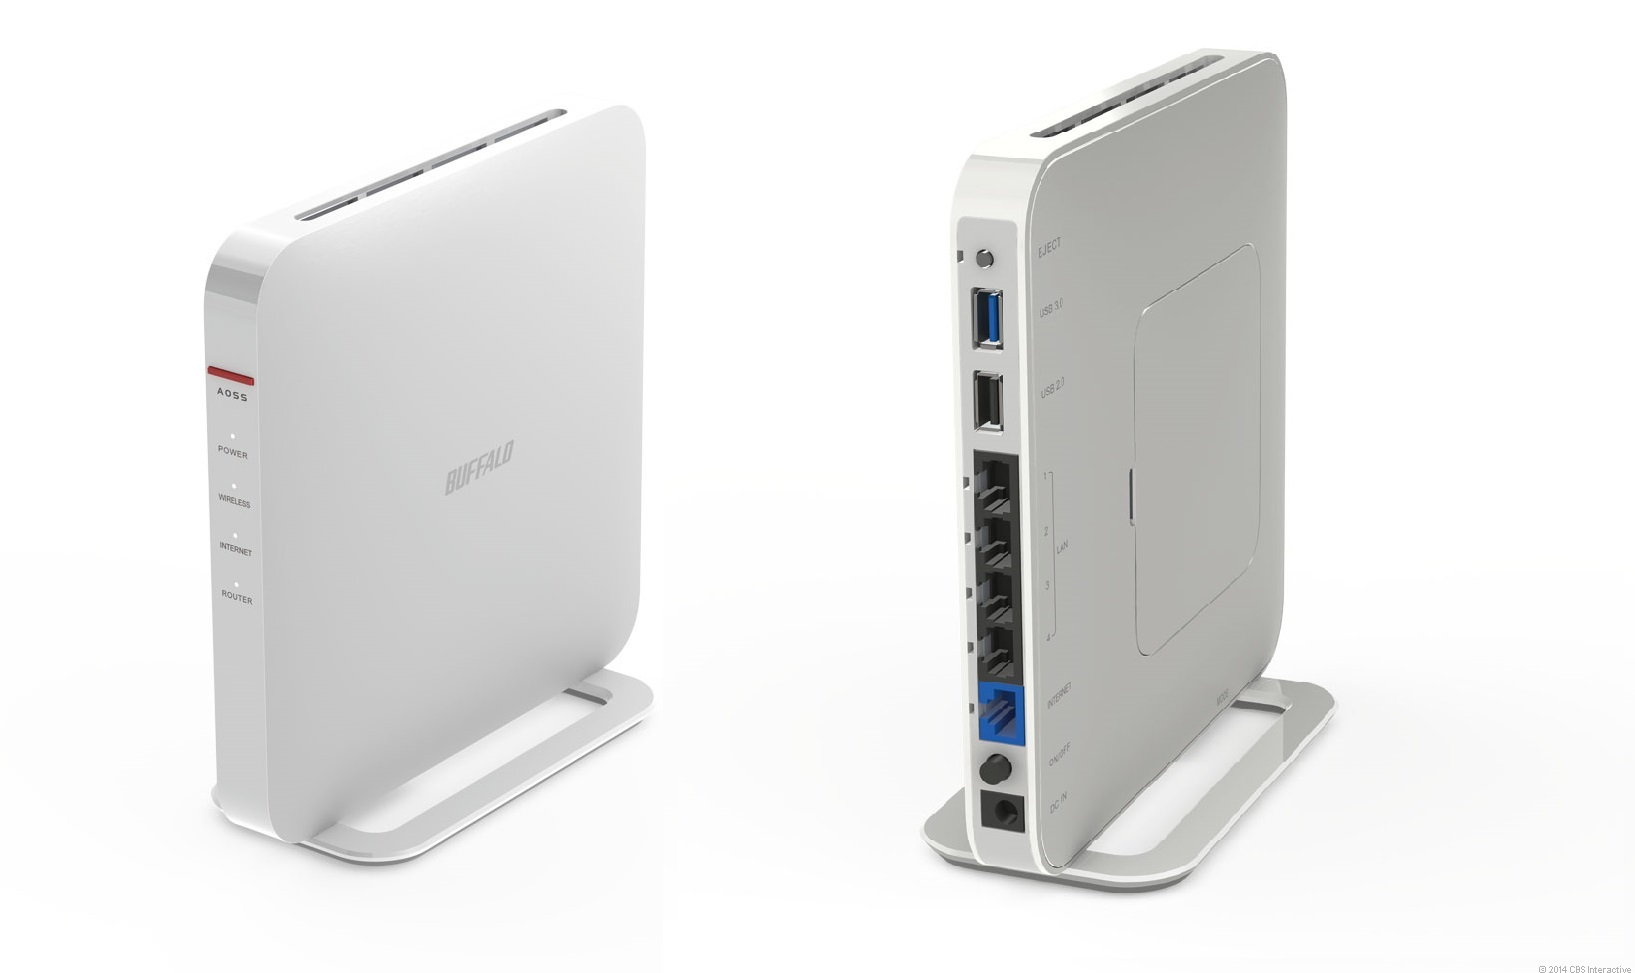 The top-tier AirStation Extreme AC 1900 Gigabit Dual Band Wireless Router (model WXR-1900DHP).